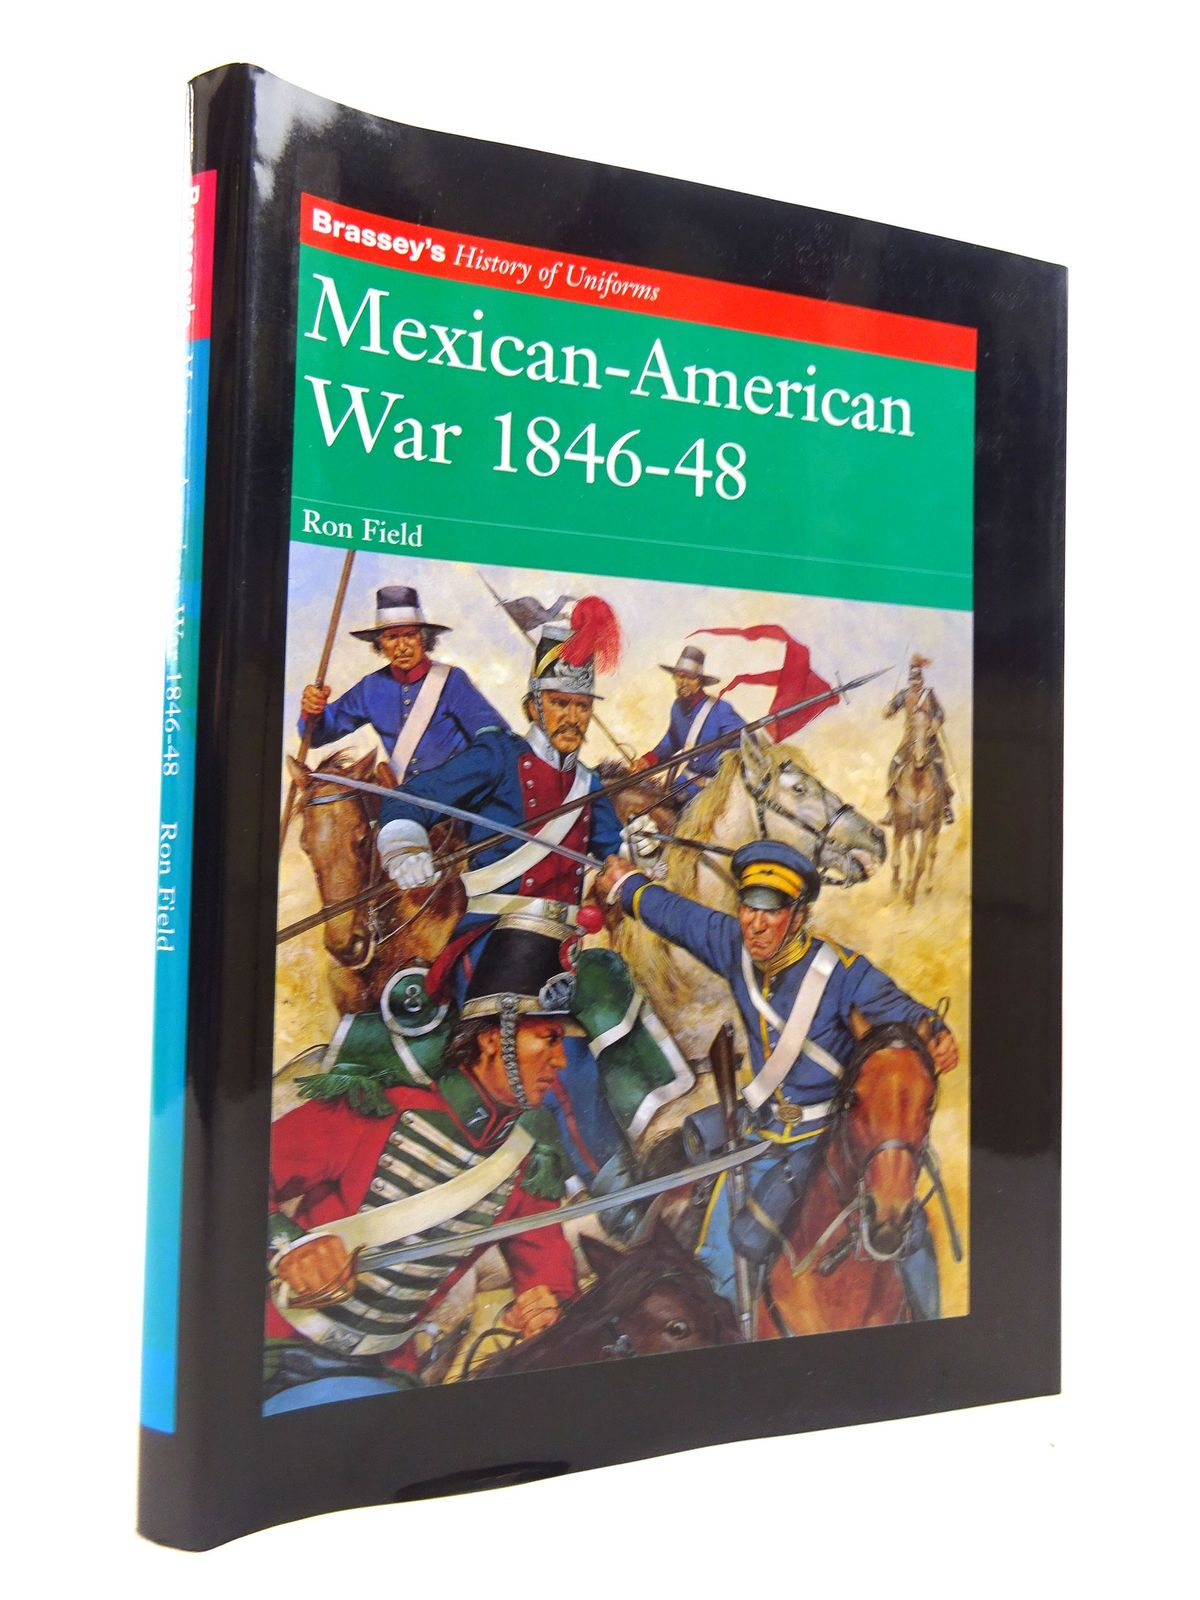 Photo of MEXICAN-AMERICAN WAR 1846-48 written by Field, Ron illustrated by Hook, Richard published by Brassey's (STOCK CODE: 1816016)  for sale by Stella & Rose's Books